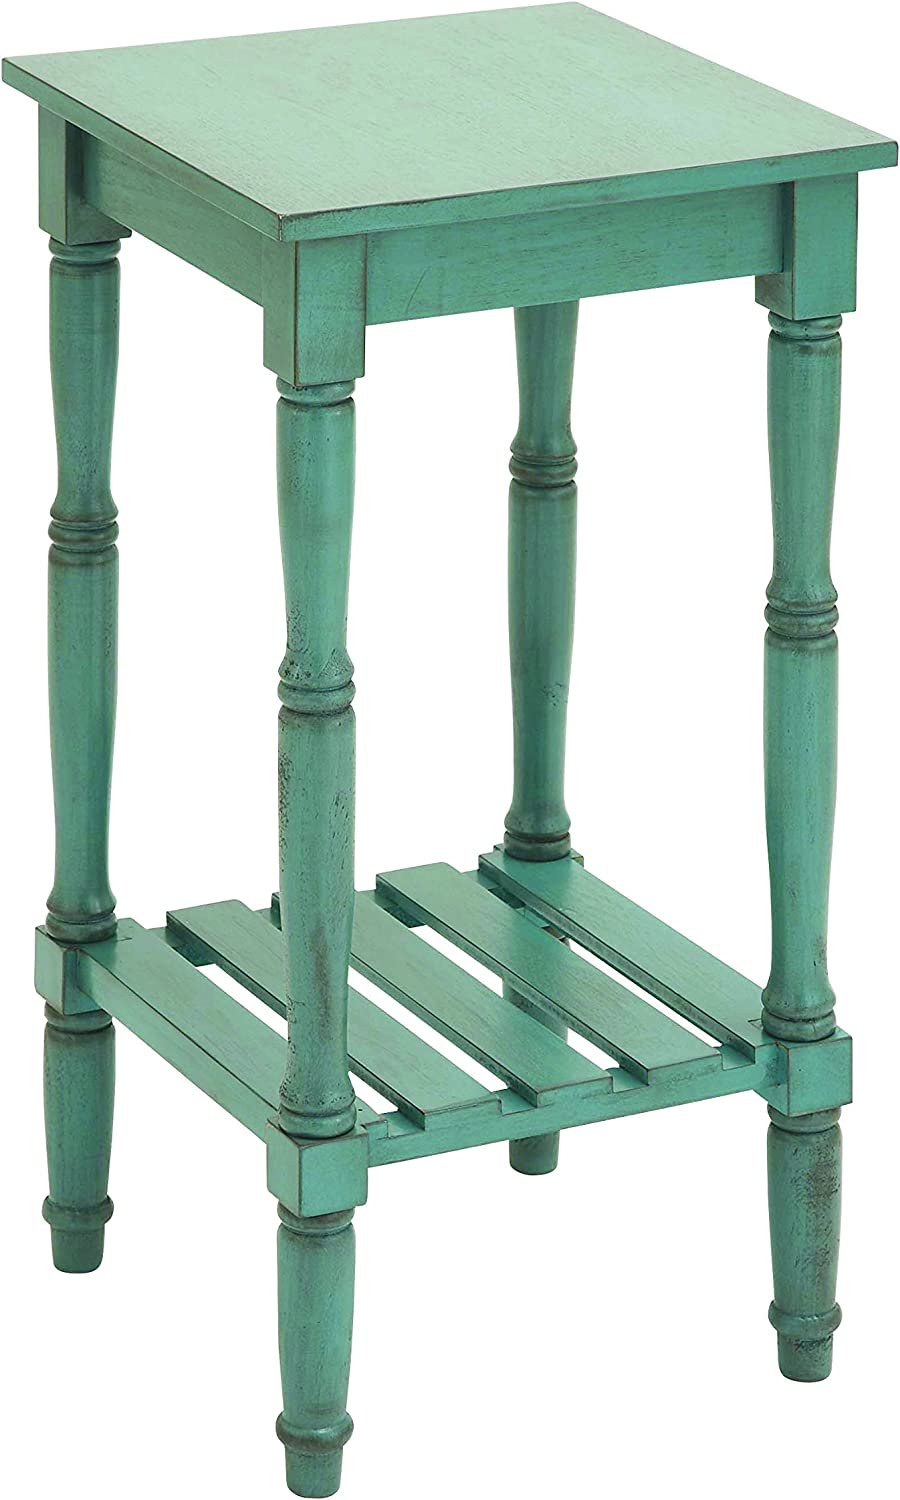 Benzara Wood Accent Table with Square Top Surface, 18 by 18 by 18-Inch, bluee